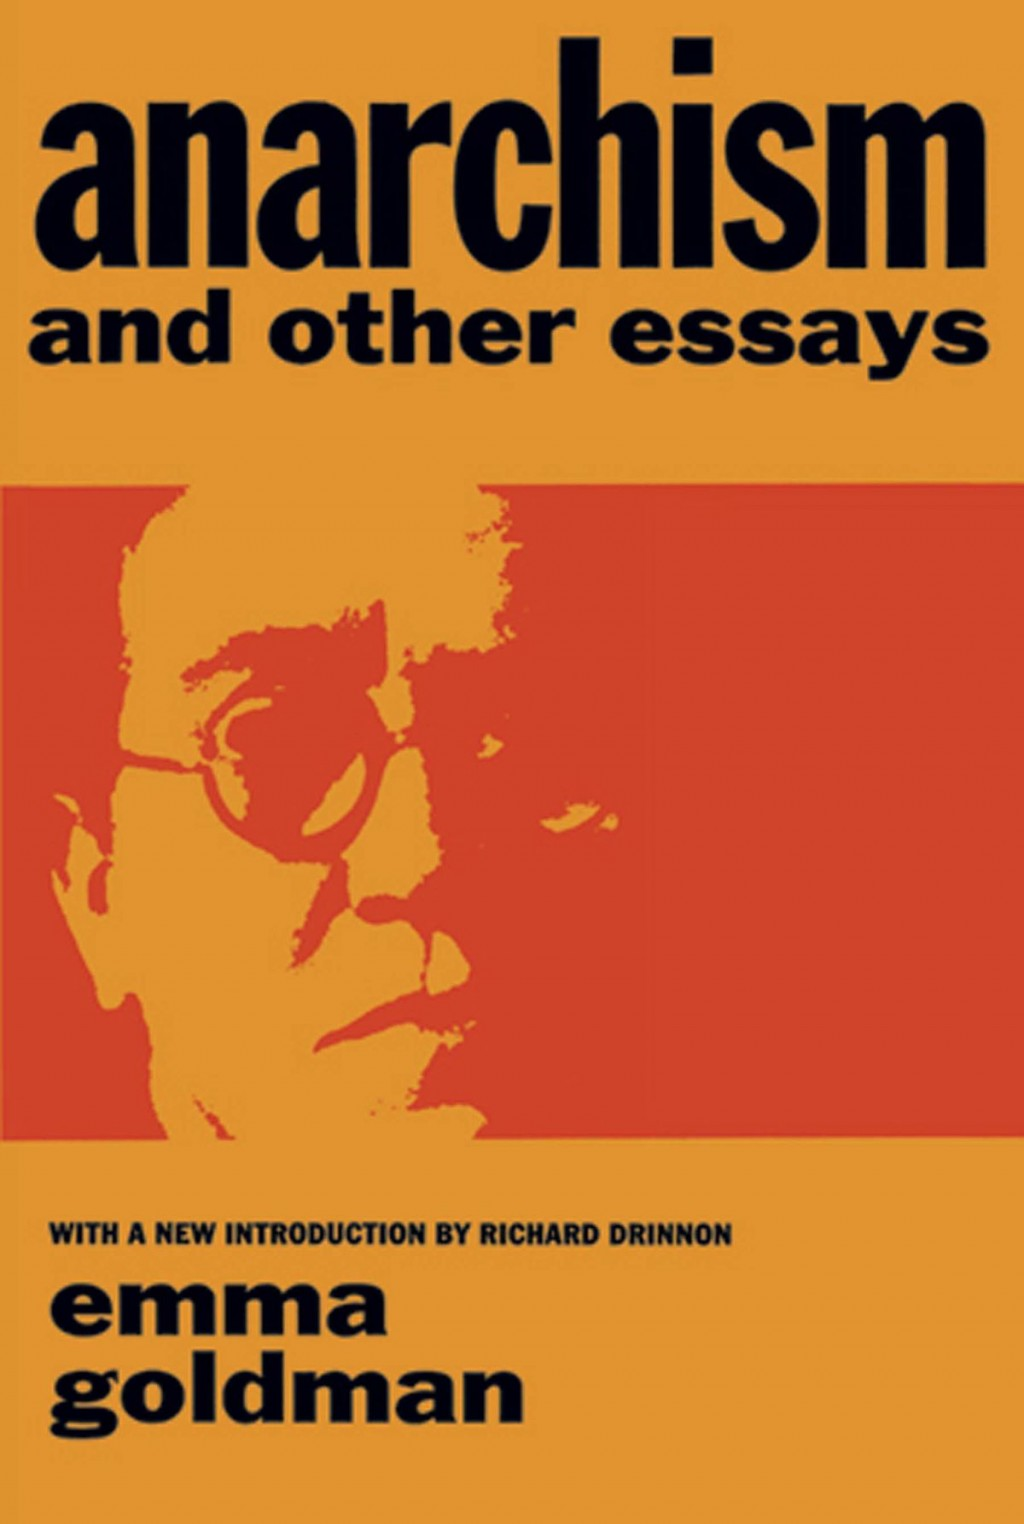 001 Essay Example Anarchism And Other Essays Incredible Emma Goldman Summary Pdf Large